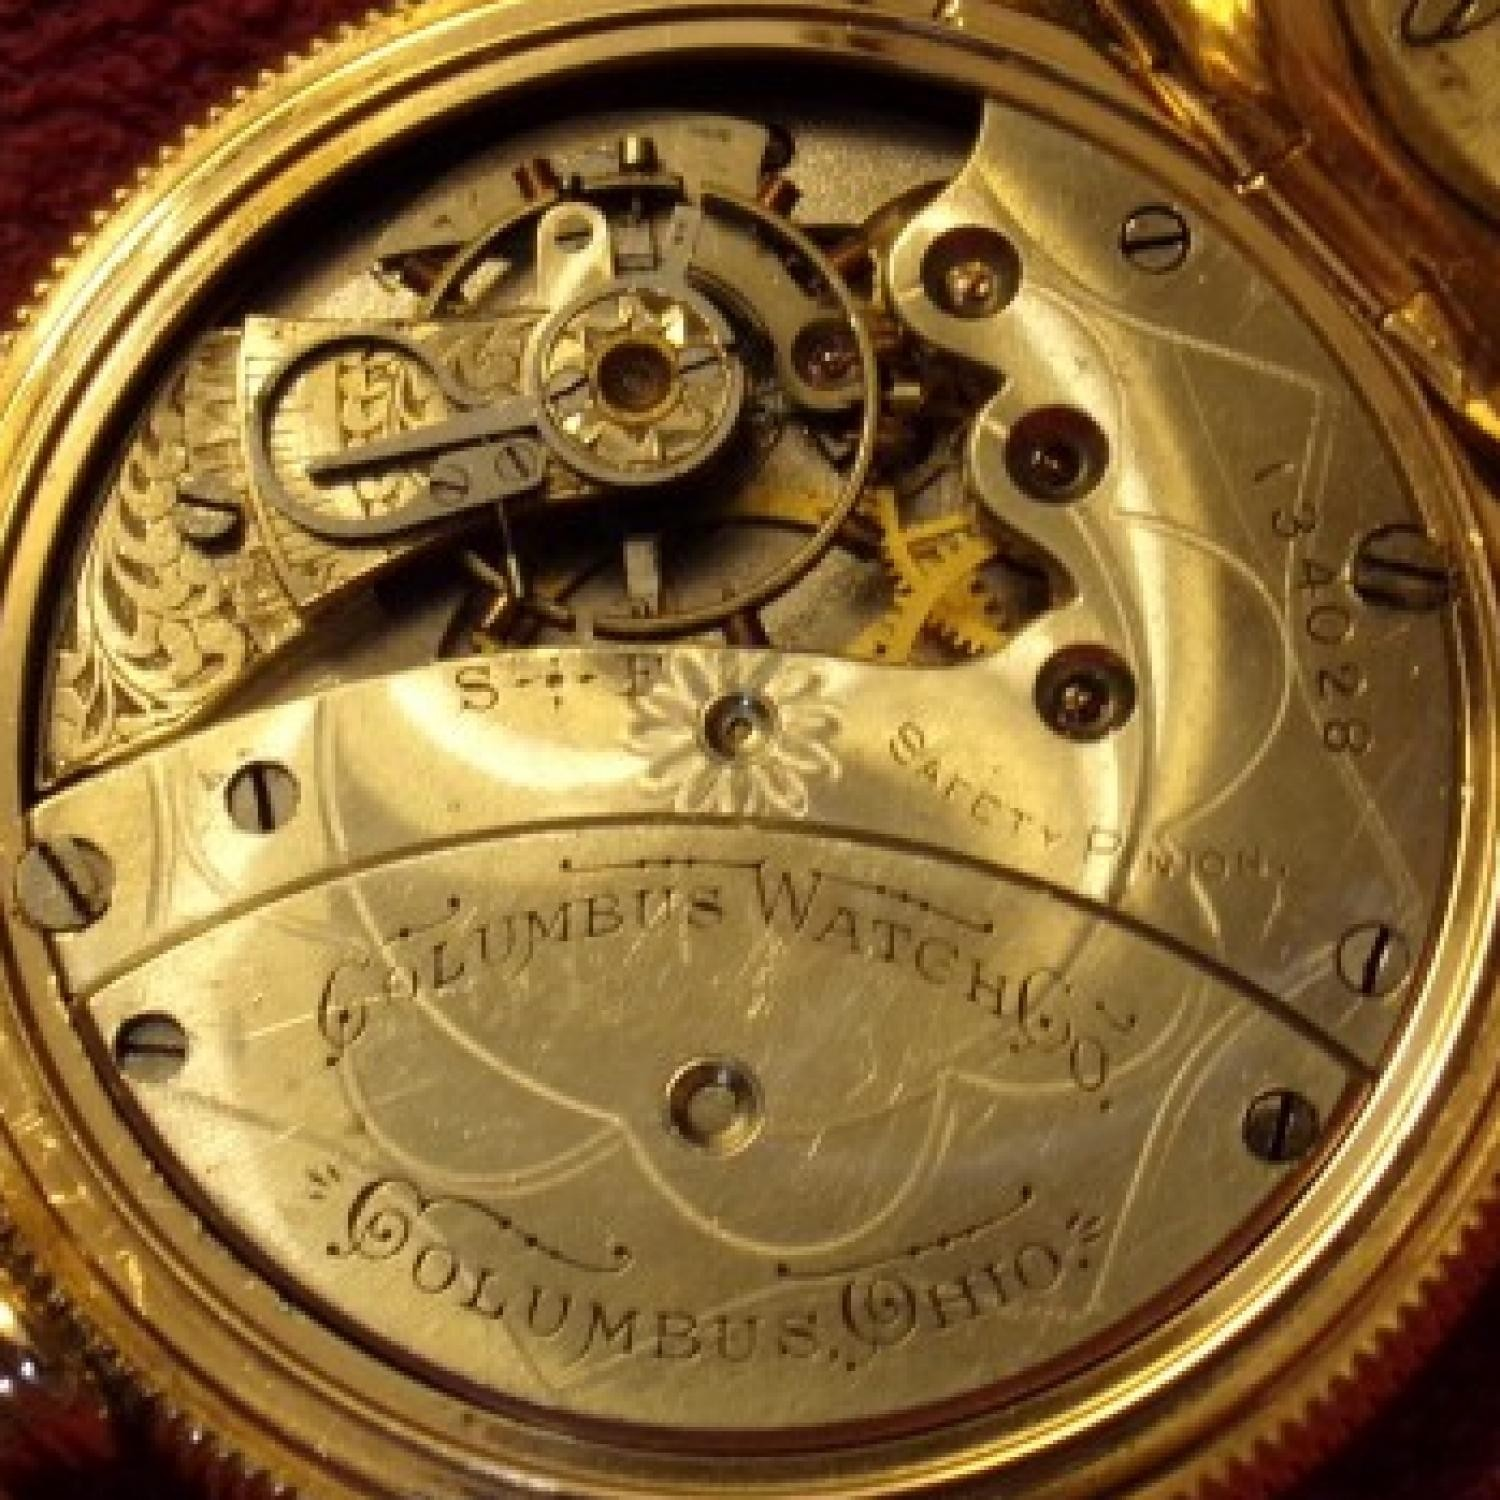 Image of Columbus Watch Co. Unknown #134028 Movement